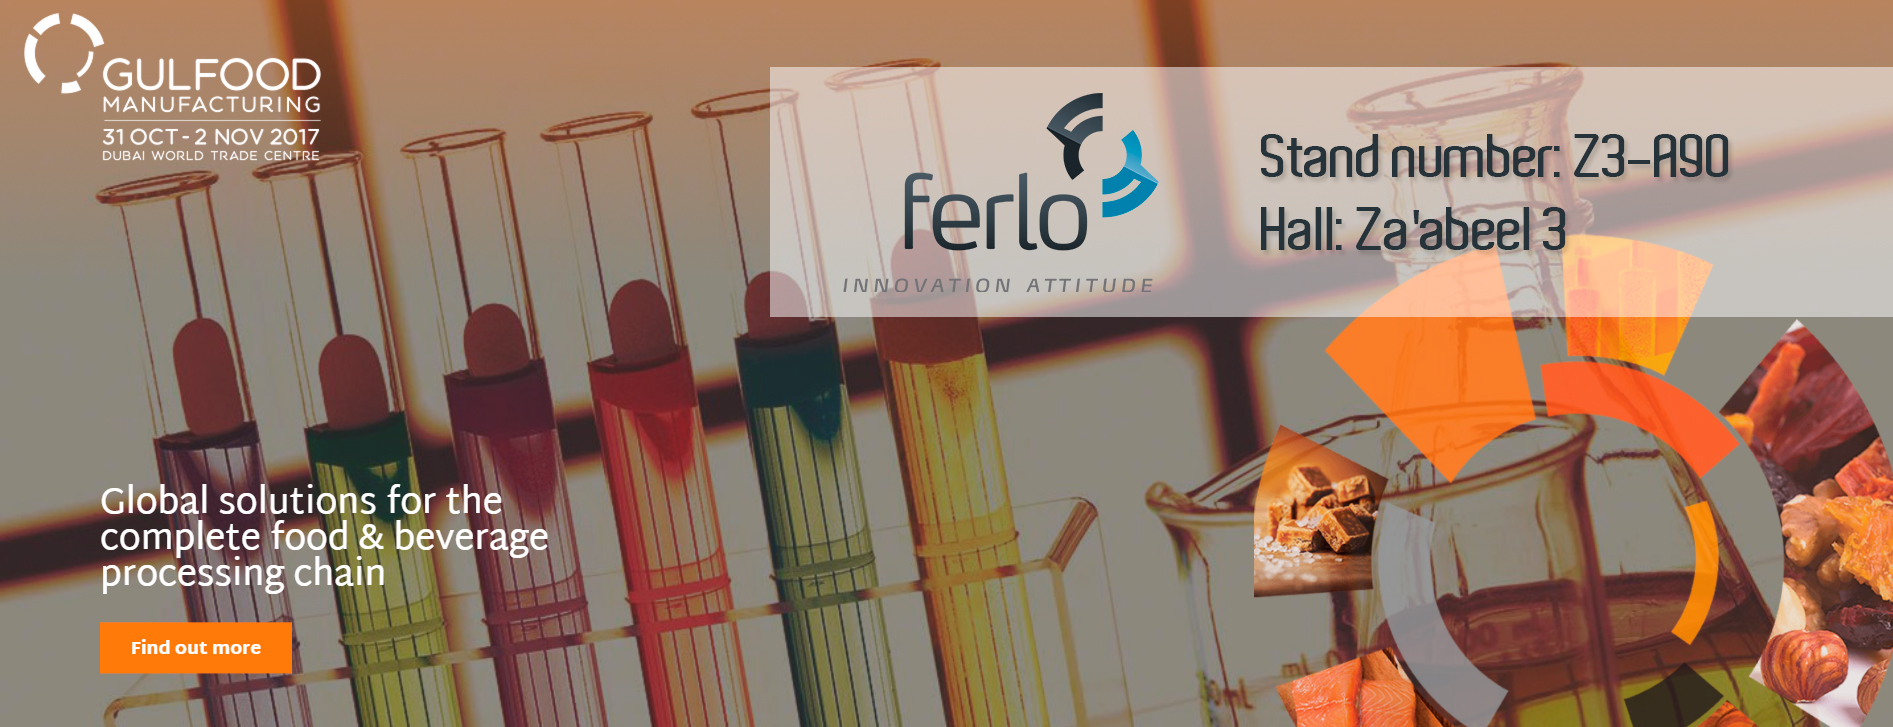 Ferlo is participating in Gulfood Manufacturing Fair 2017 Dubai